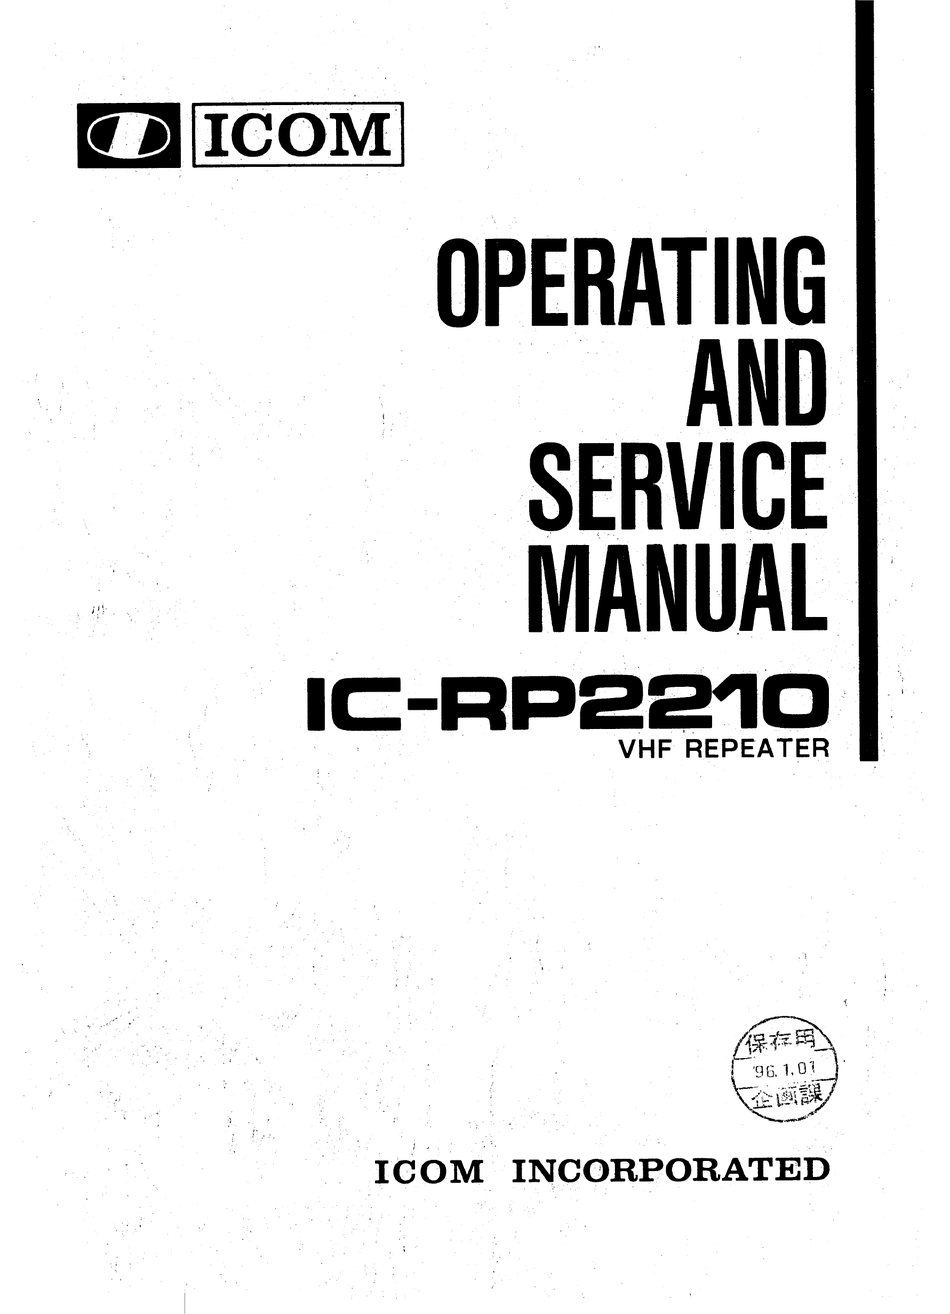 ICOM IC-RP2210 OPERATING AND SERVICE MANUAL Pdf Download